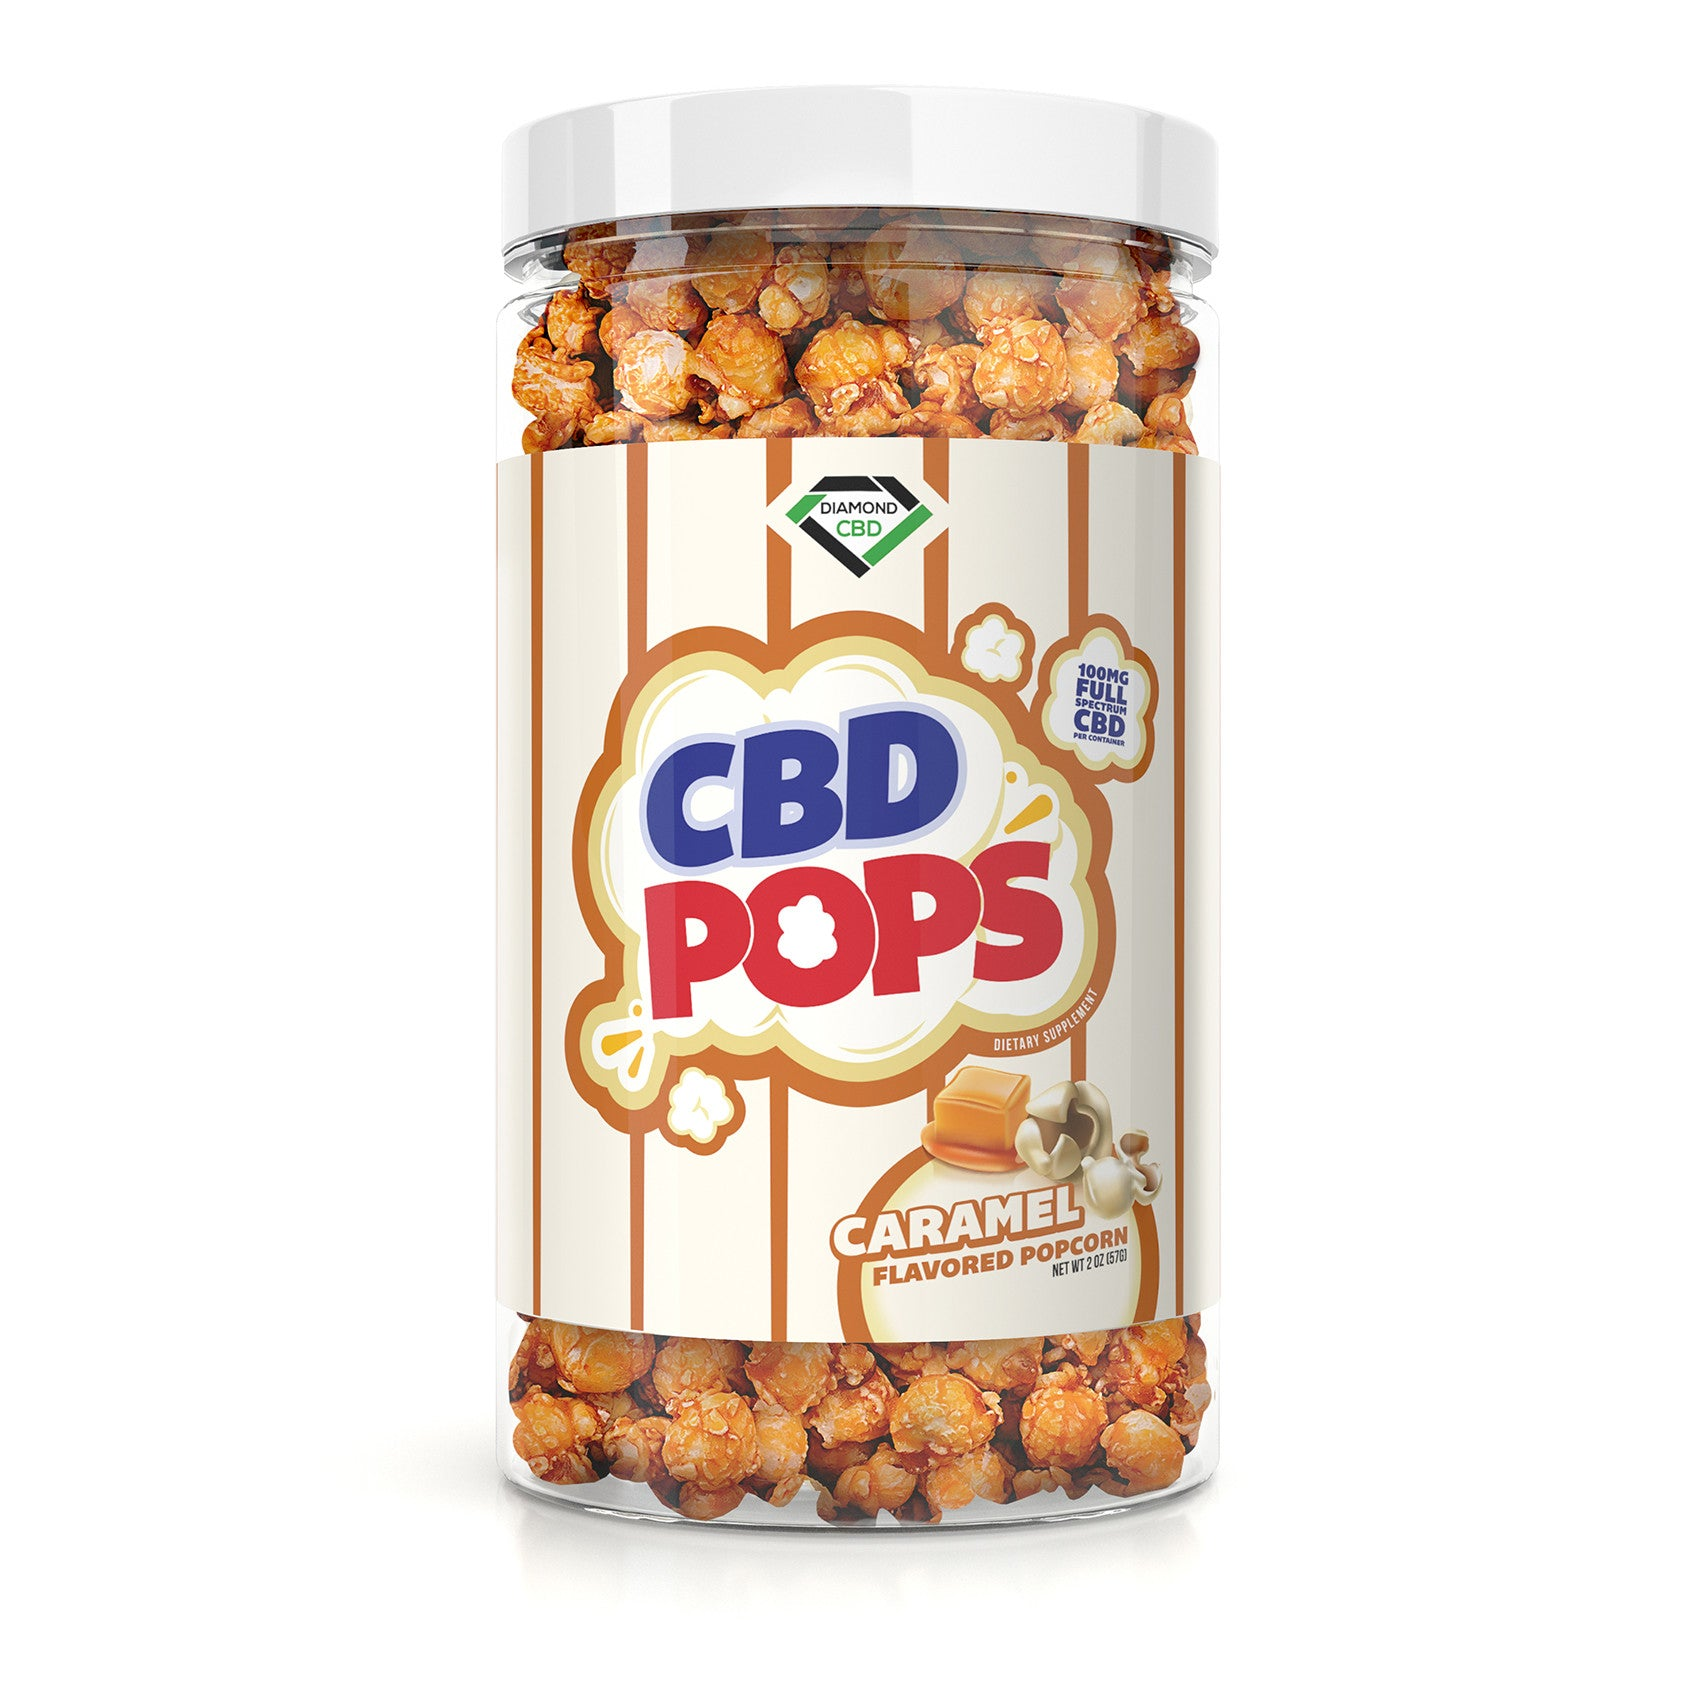 Diamond CBD Popcorn - Caramel Corn - 100mg - My CBD Mall